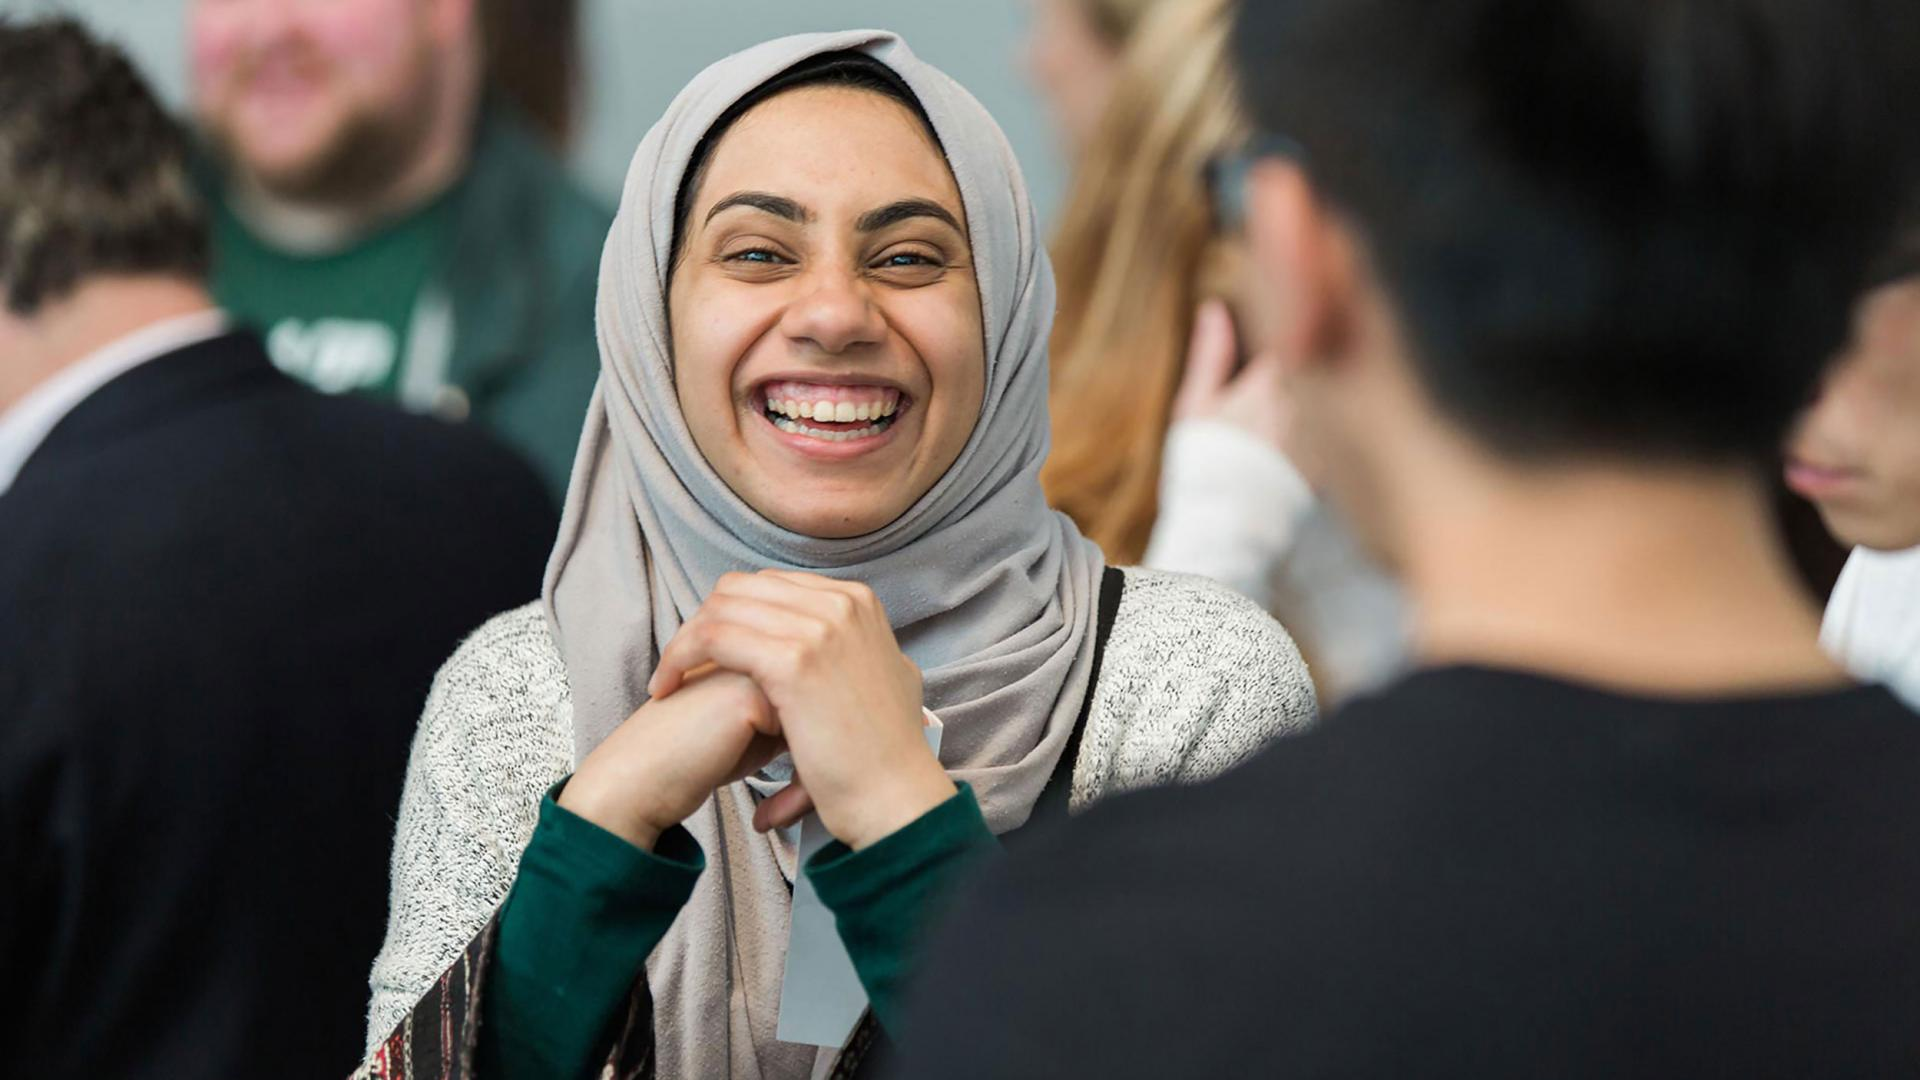 A woman in a head scarf smiling brightly